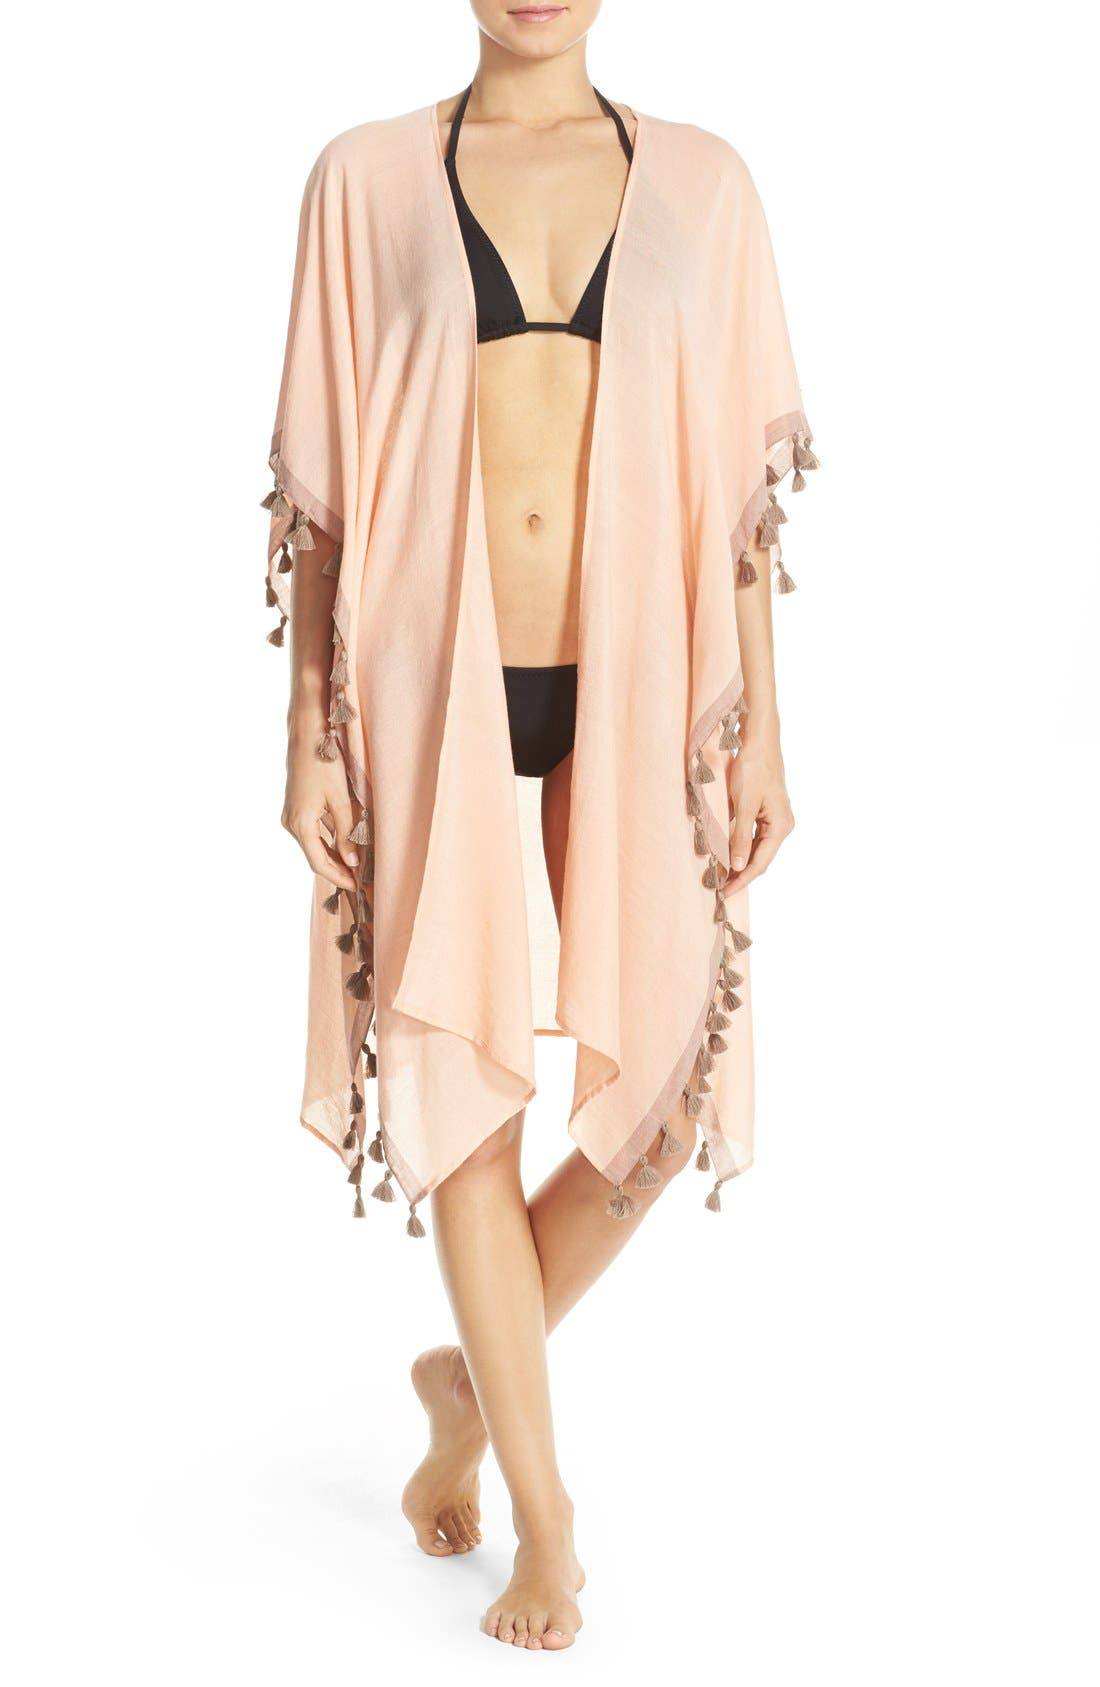 Alternate Image 1 Selected - ale BY ALESSANDRA 'Mother Earth' Tassel Trim Cover-Up Kimono